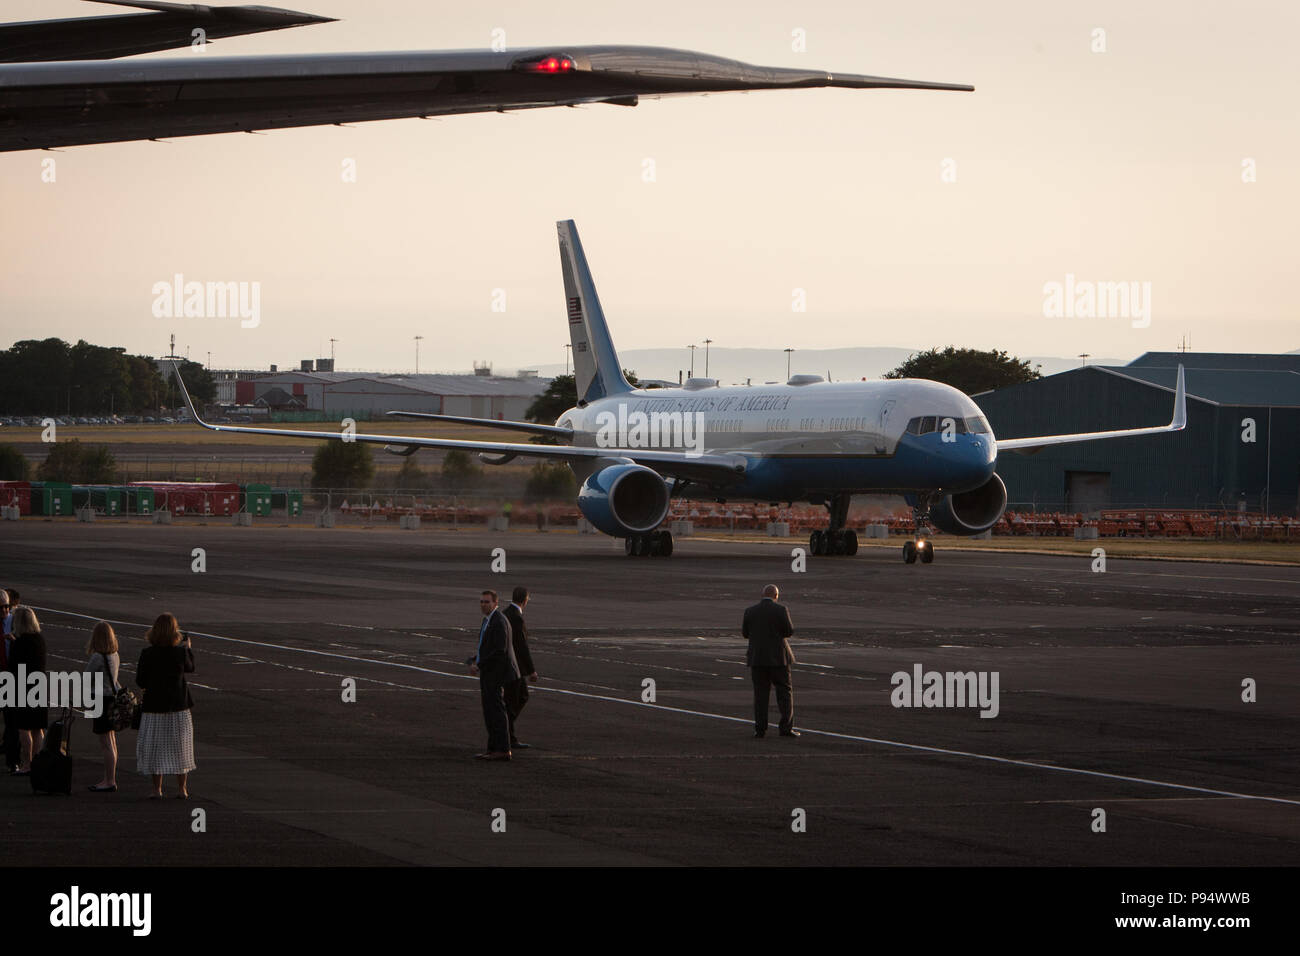 Prestwick, Scotland, on 13 July 2018. President Donald Trump, and wife Melania, arrive on Air Force One at Glasgow Prestwick International Airport at the start of a two day trip to Scotland. Image Credit: Jeremy Sutton-Hibbert/ Alamy News. Stock Photo